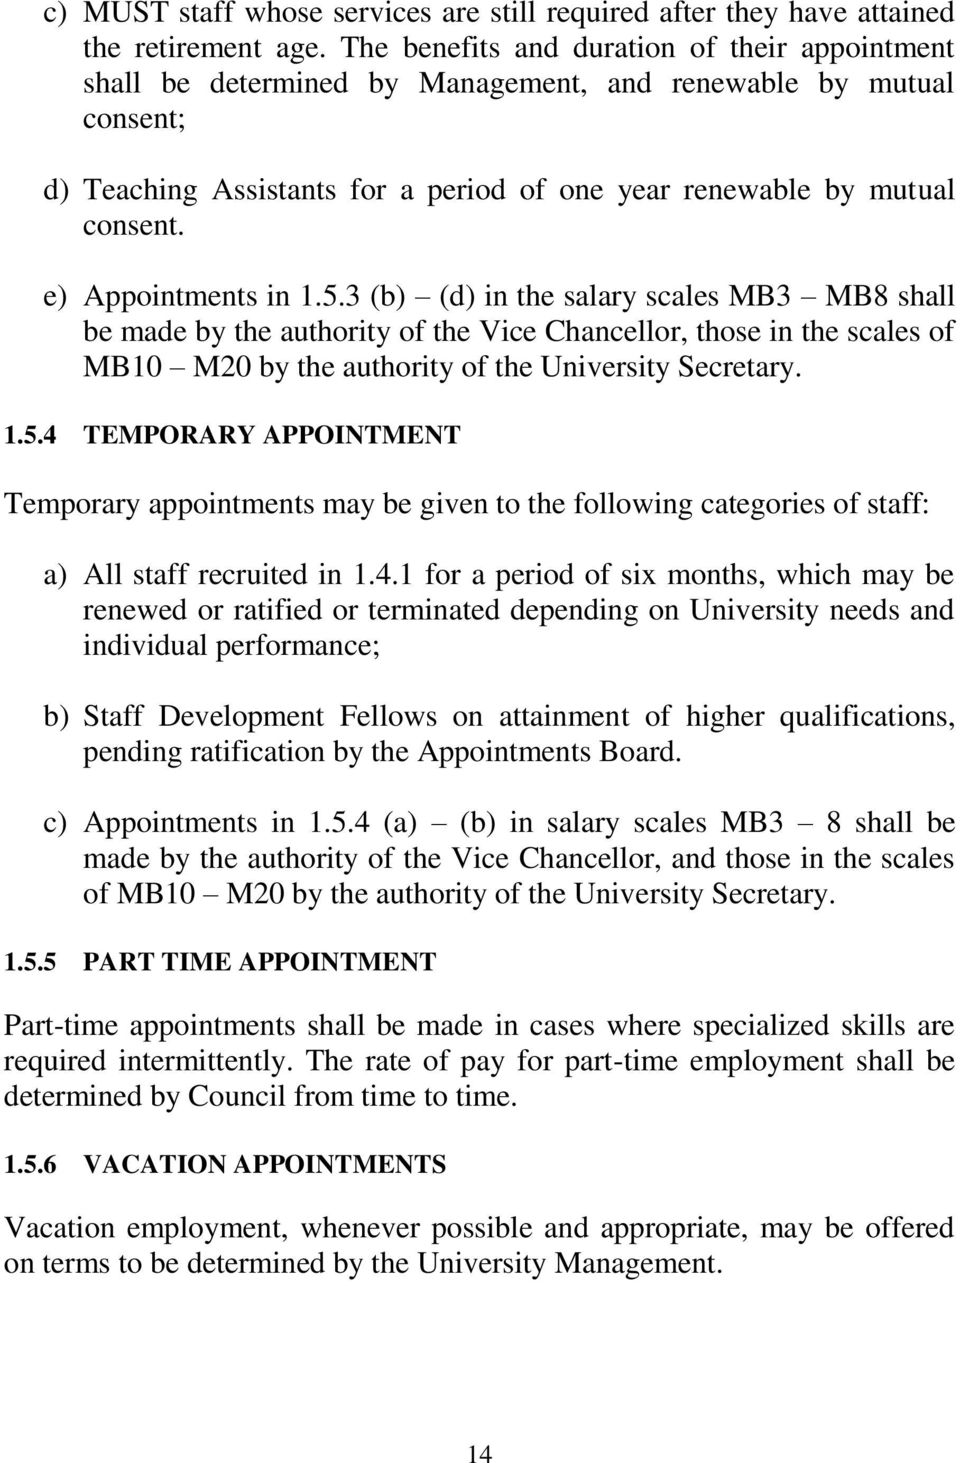 e) Appointments in 1.5.3 (b) (d) in the salary scales MB3 MB8 shall be made by the authority of the Vice Chancellor, those in the scales of MB10 M20 by the authority of the University Secretary. 1.5.4 TEMPORARY APPOINTMENT Temporary appointments may be given to the following categories of staff: a) All staff recruited in 1.